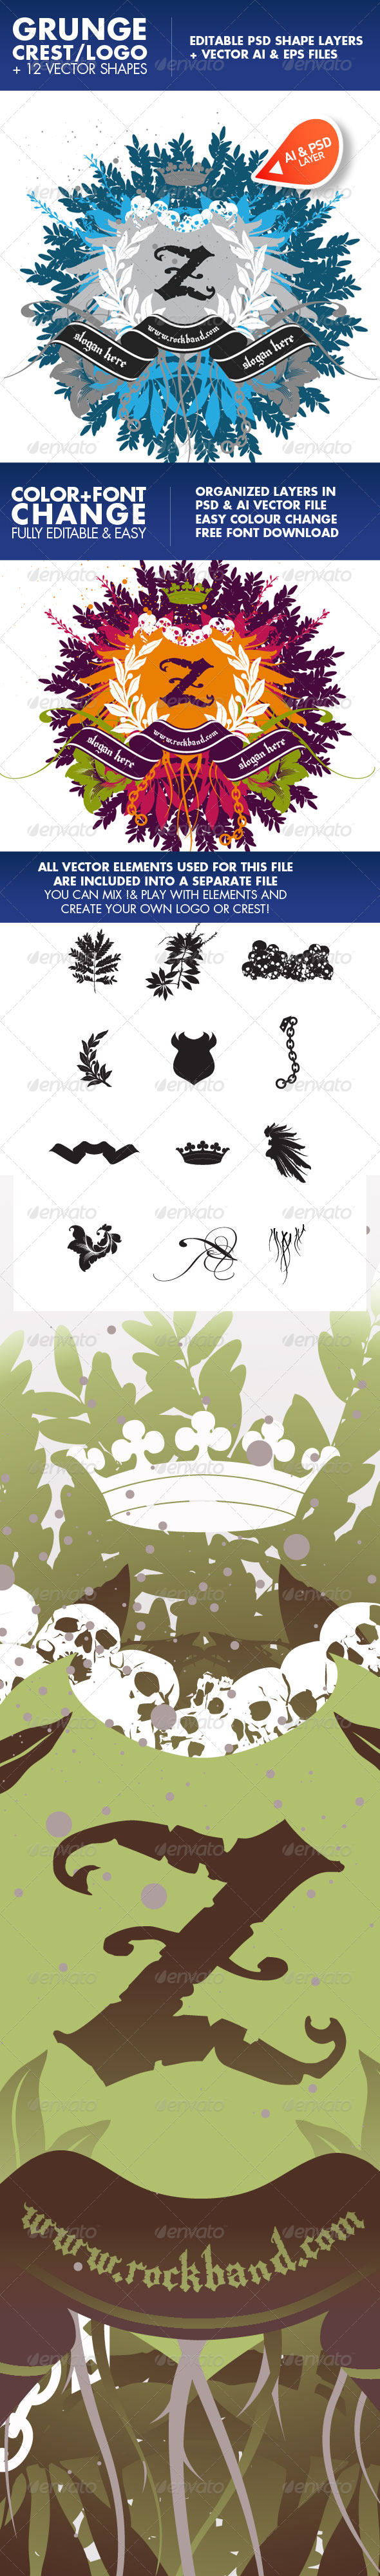 GraphicRiver Rockcrest A vector & psd crest logo and elements 227750